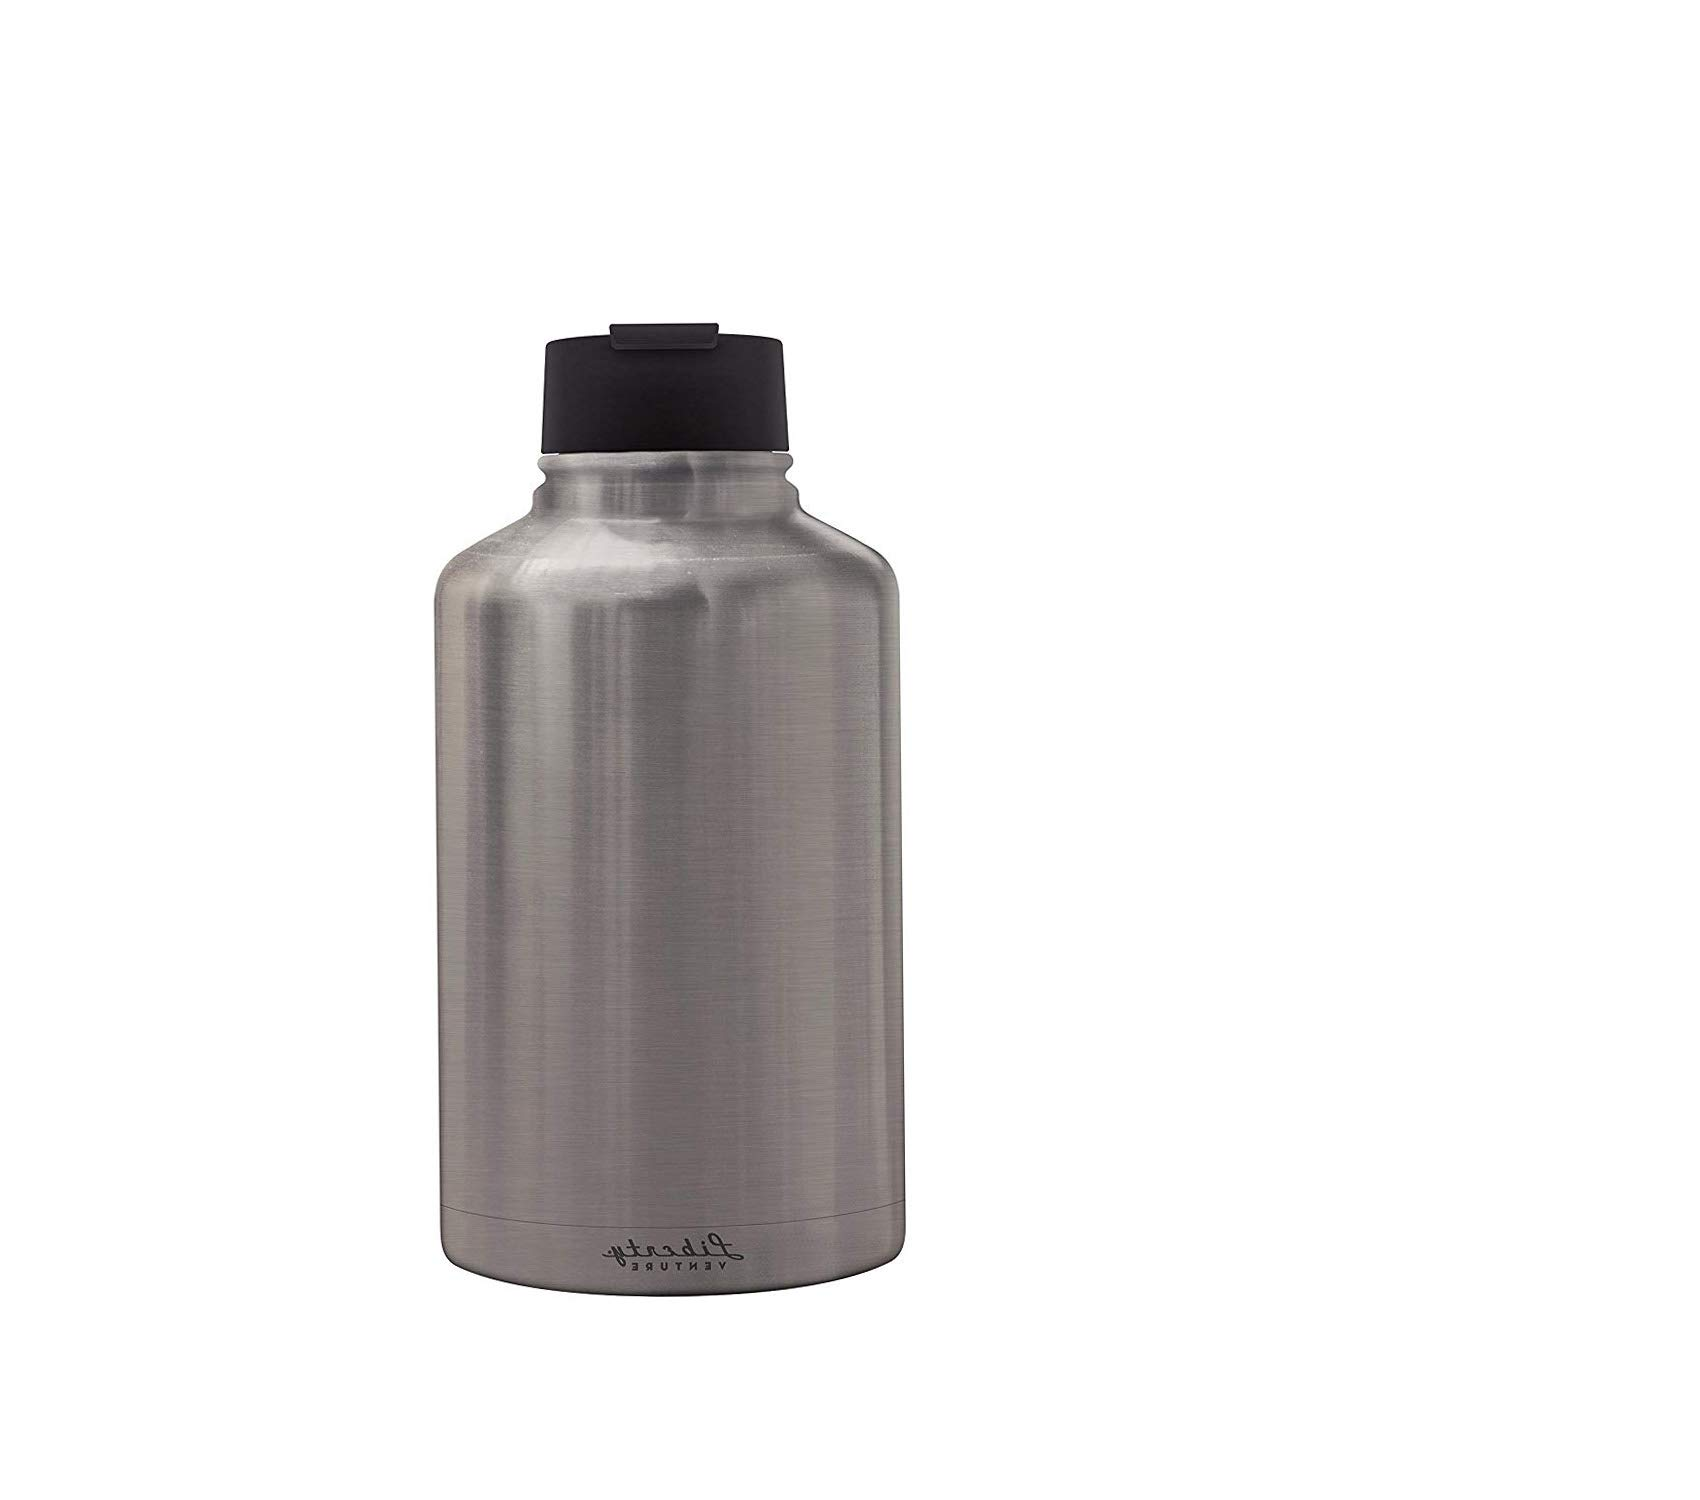 Home Décor Premium Venture Double Wall Stainless Steel Insulated Growler Storage Durable Strong Decorative